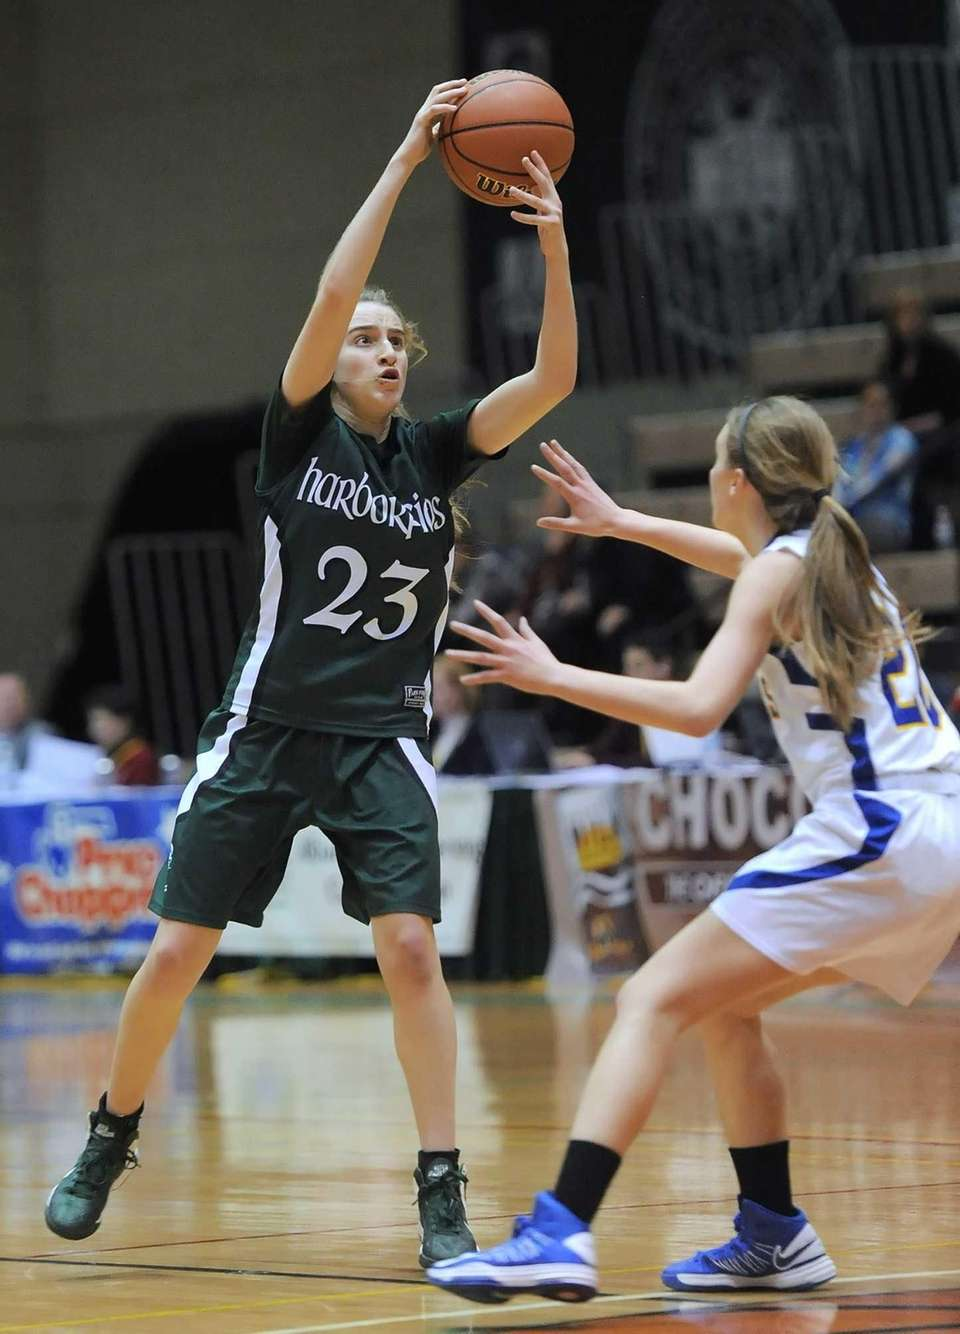 Harborfields' Toni Deren, left, reaches for a high